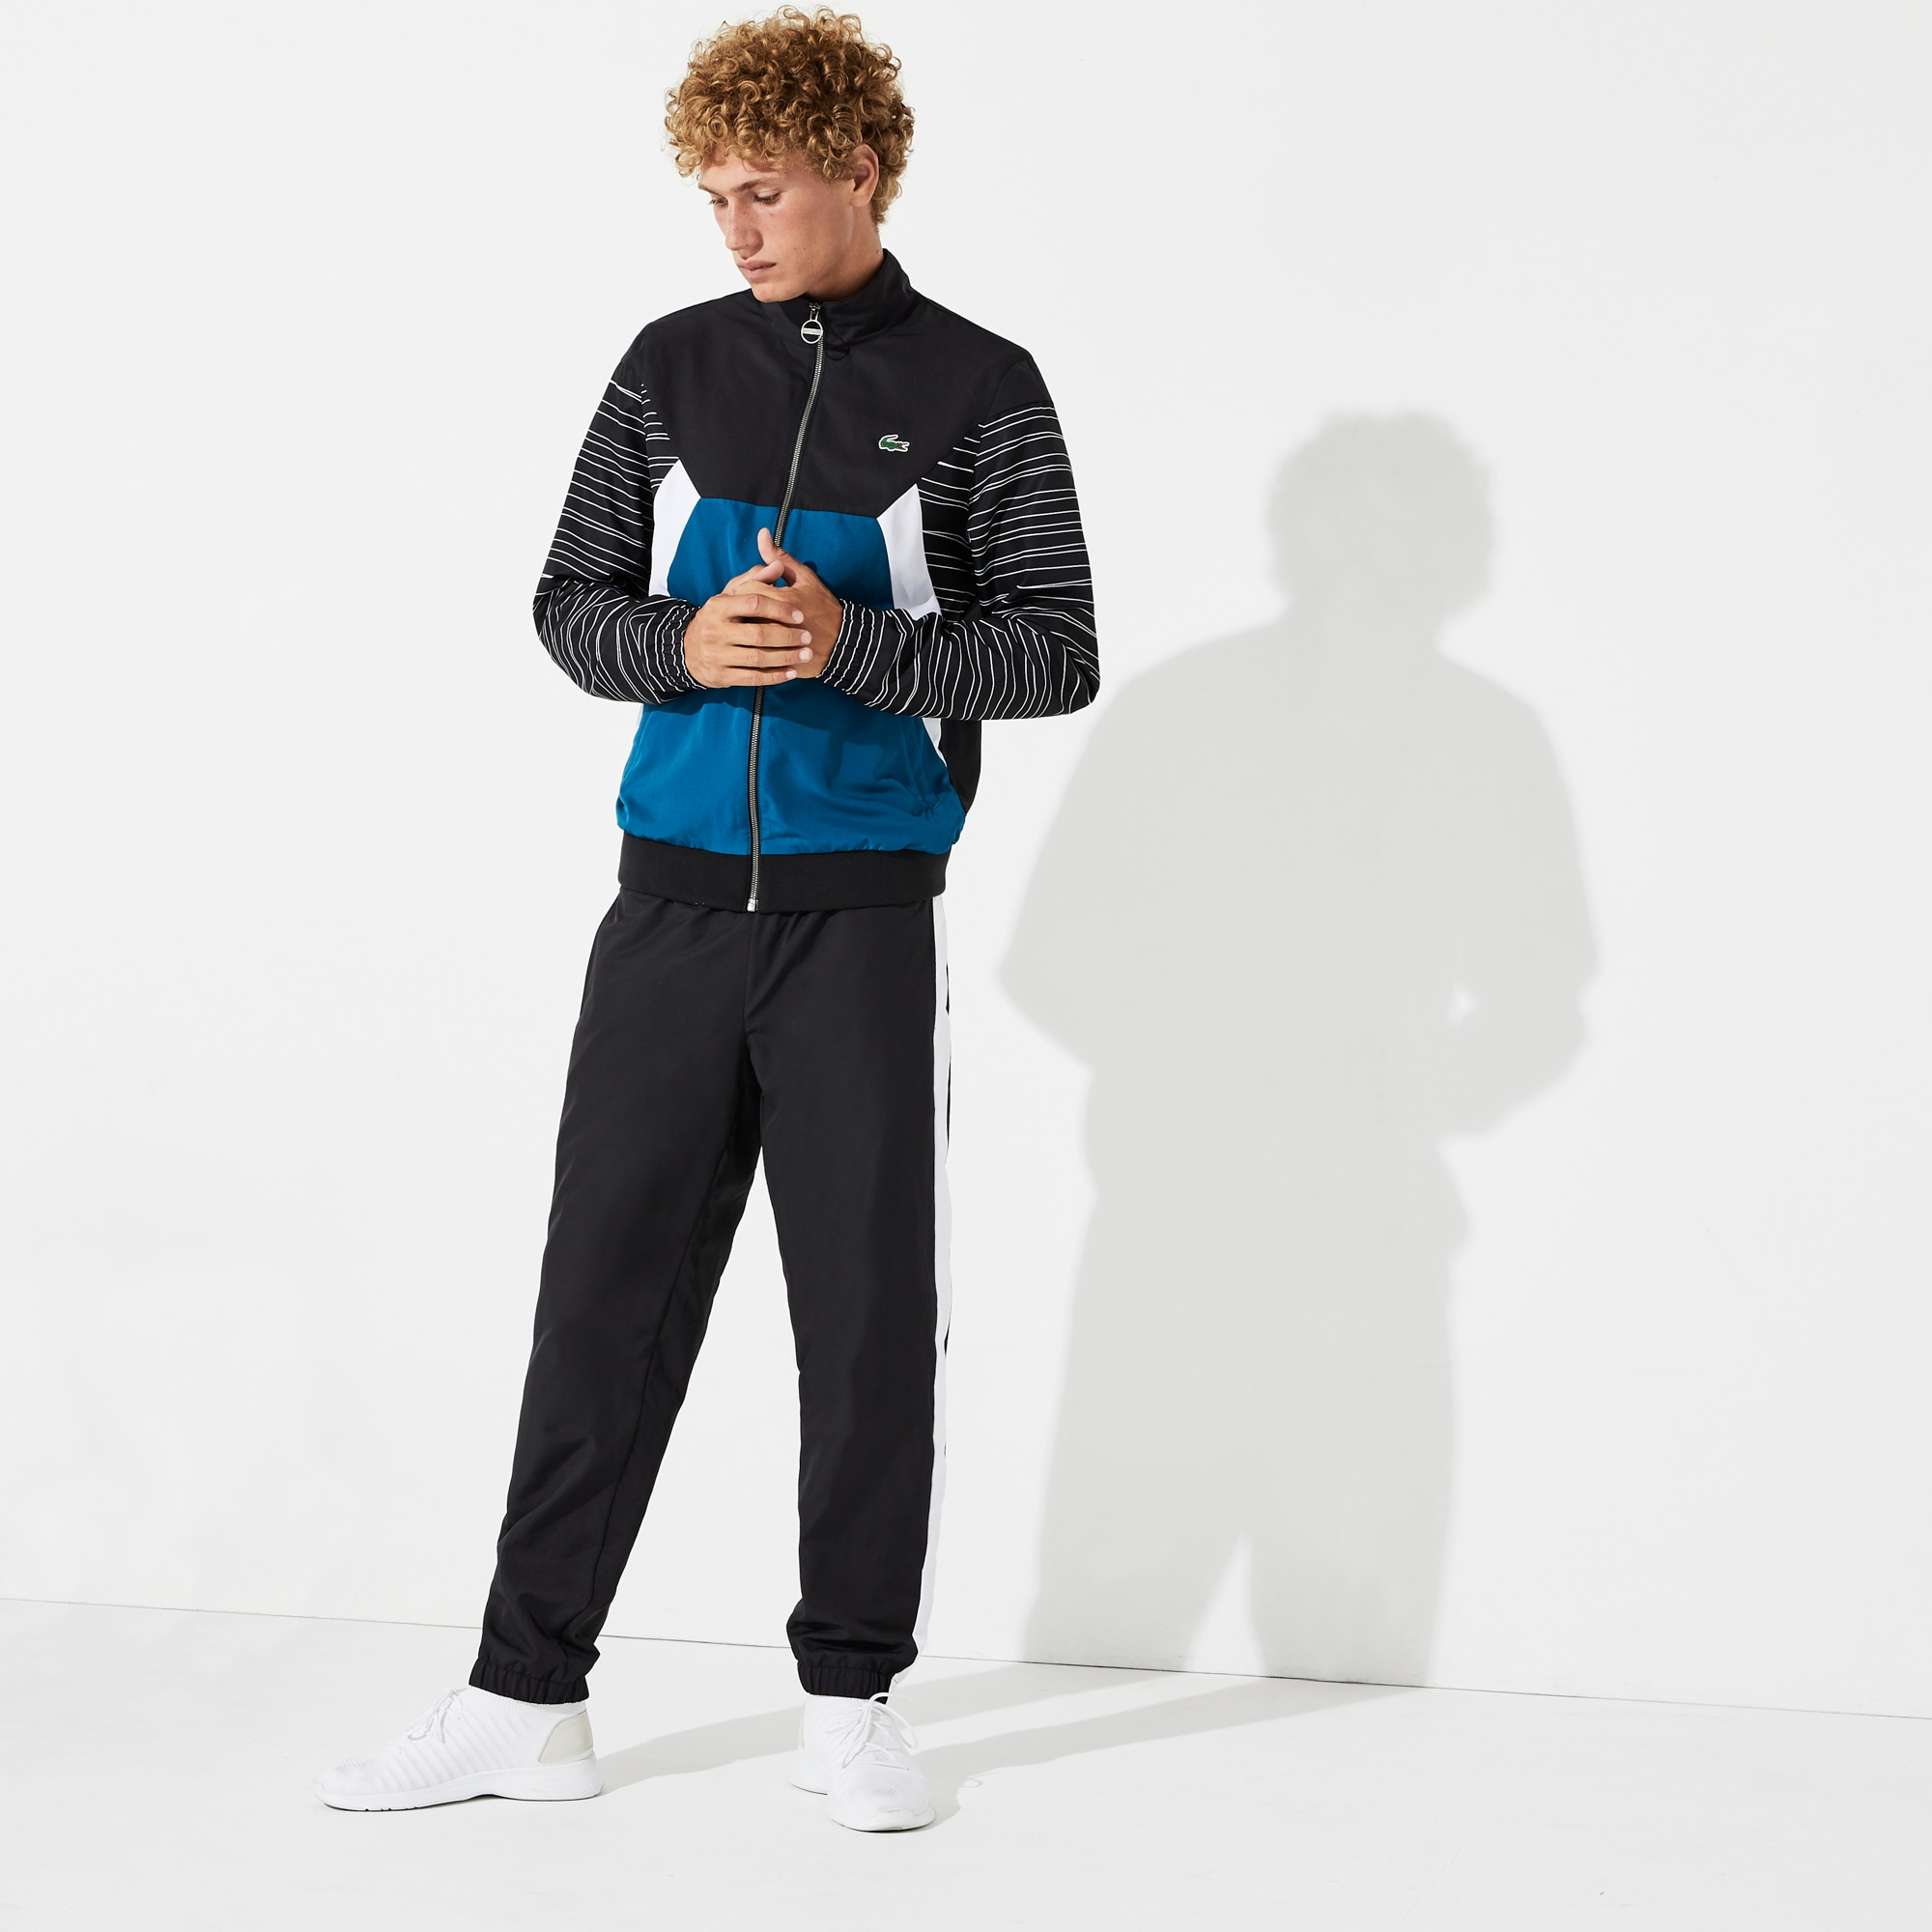 Men's SPORT Color-Blocked Tennis Sweatsuit